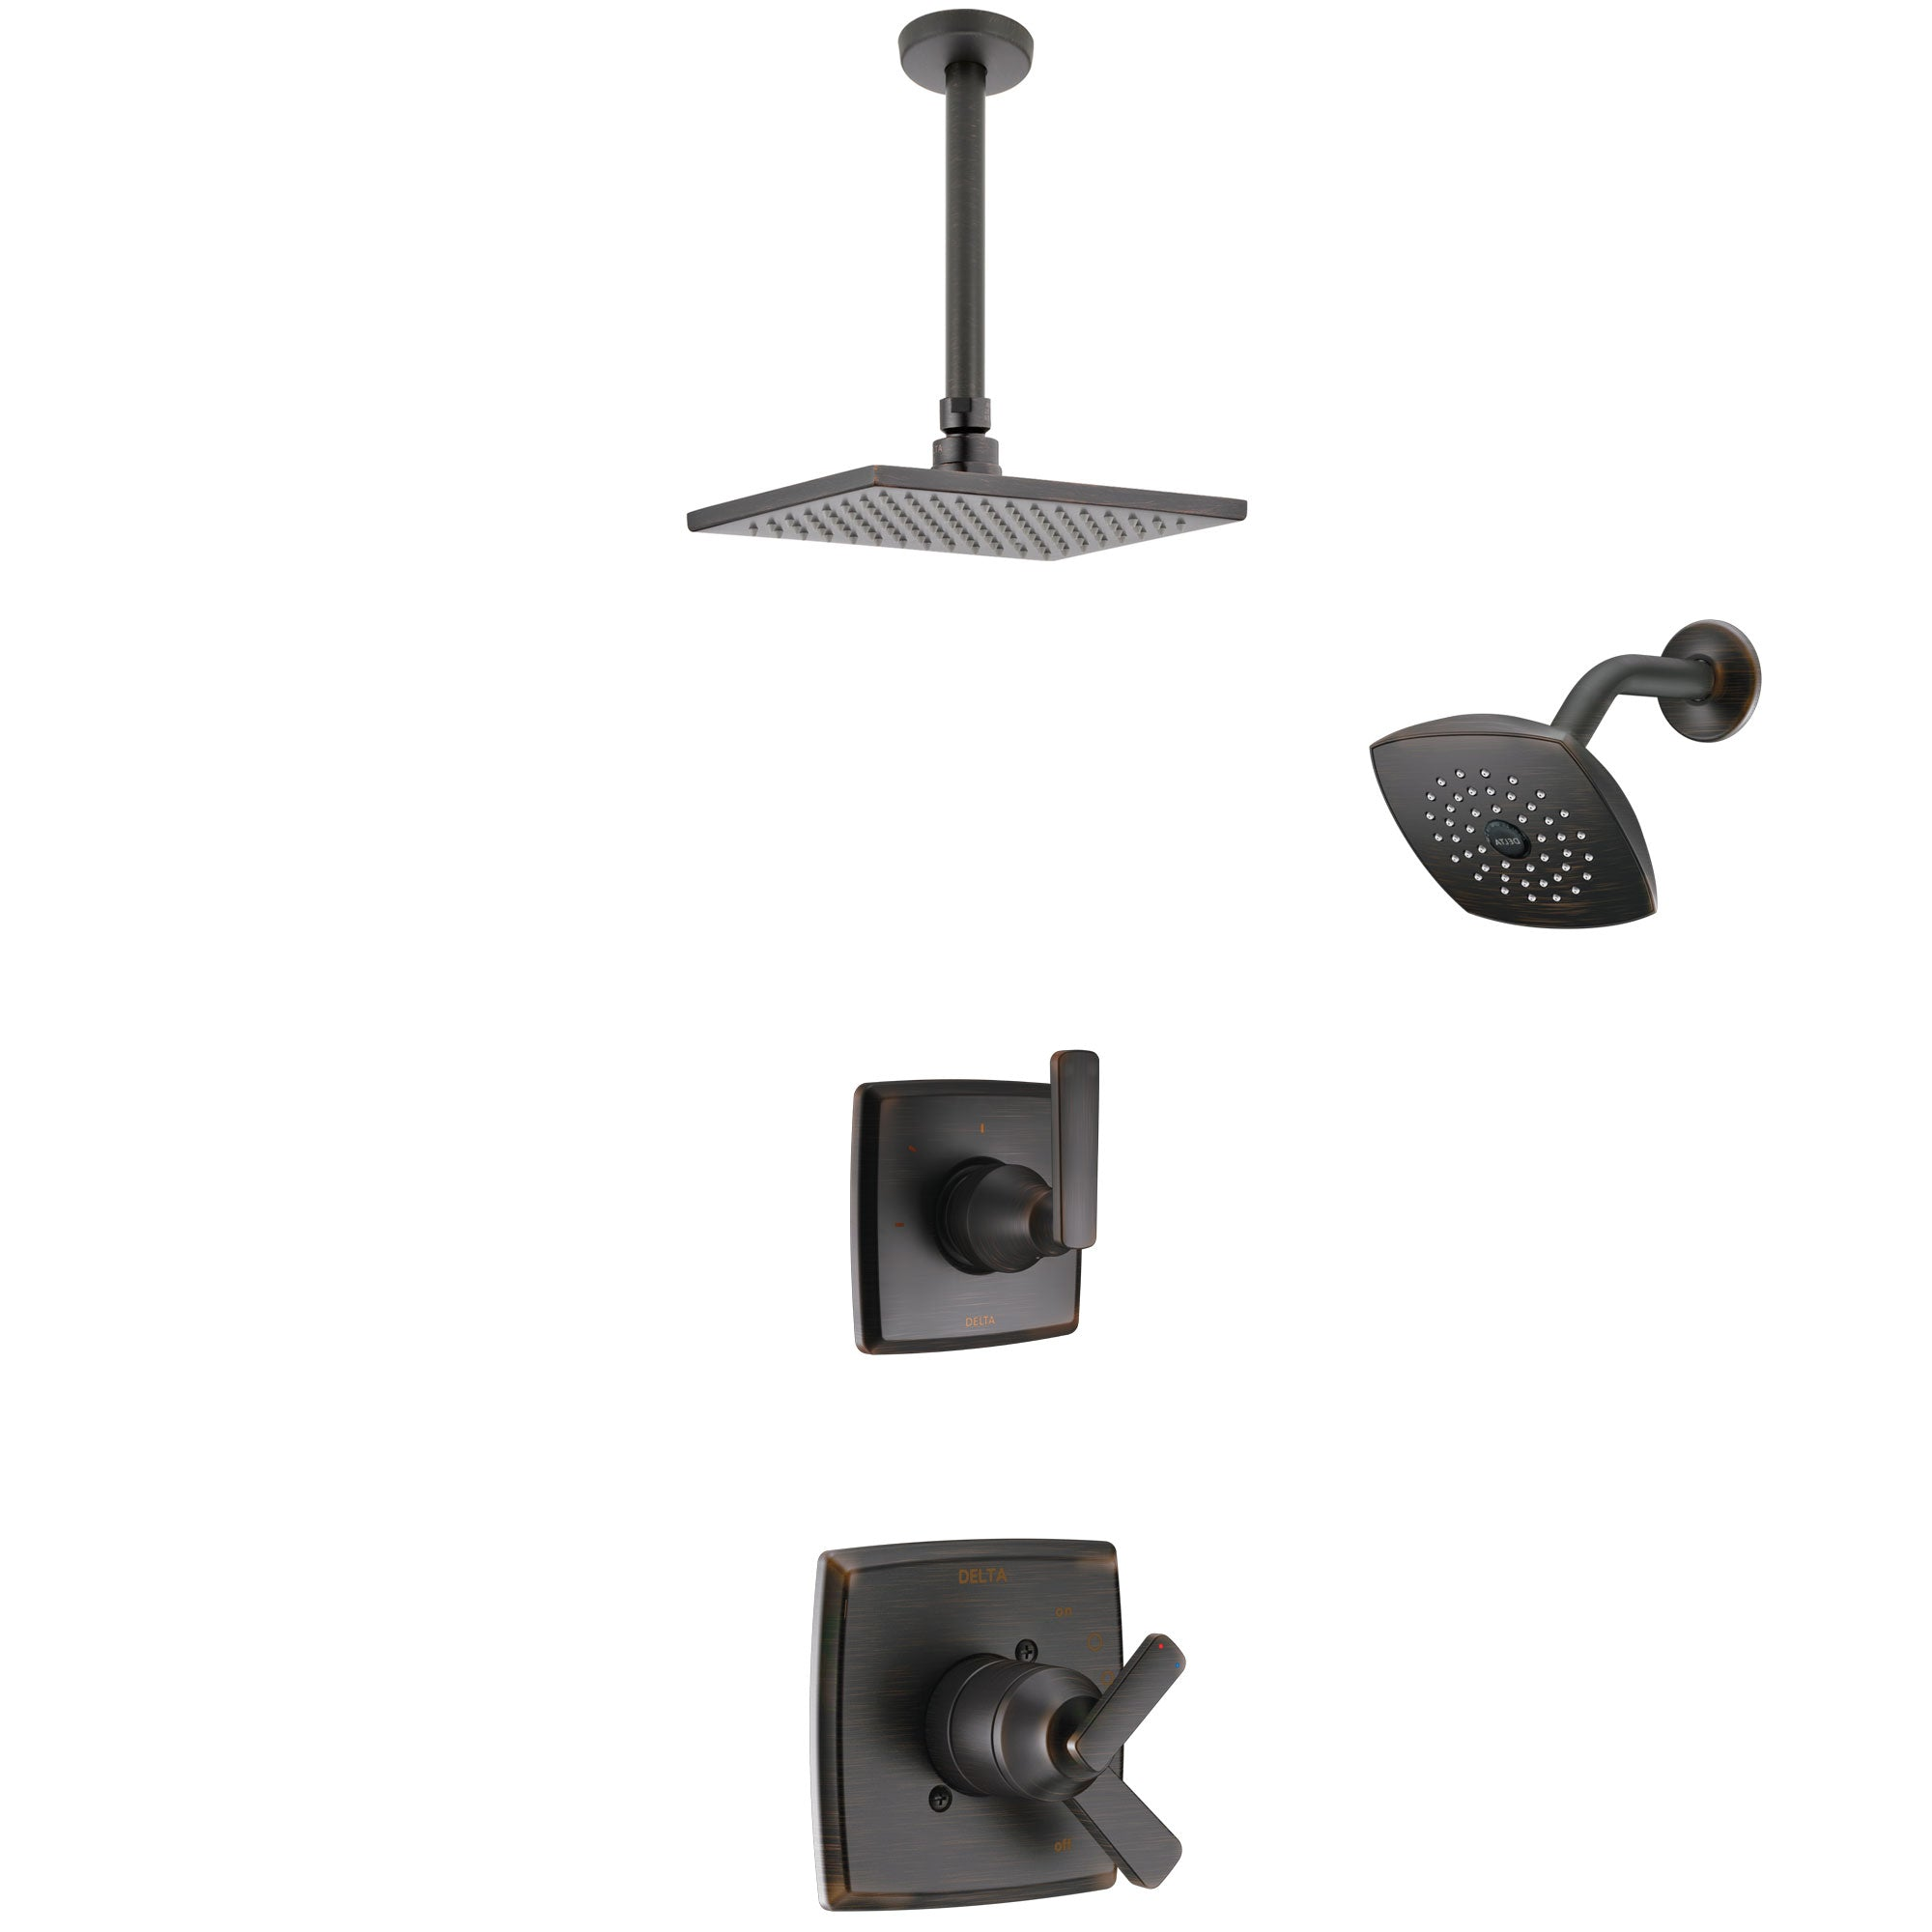 Delta Ashlyn Venetian Bronze Finish Shower System with Dual Control Handle, 3-Setting Diverter, Showerhead, and Ceiling Mount Showerhead SS17264RB5